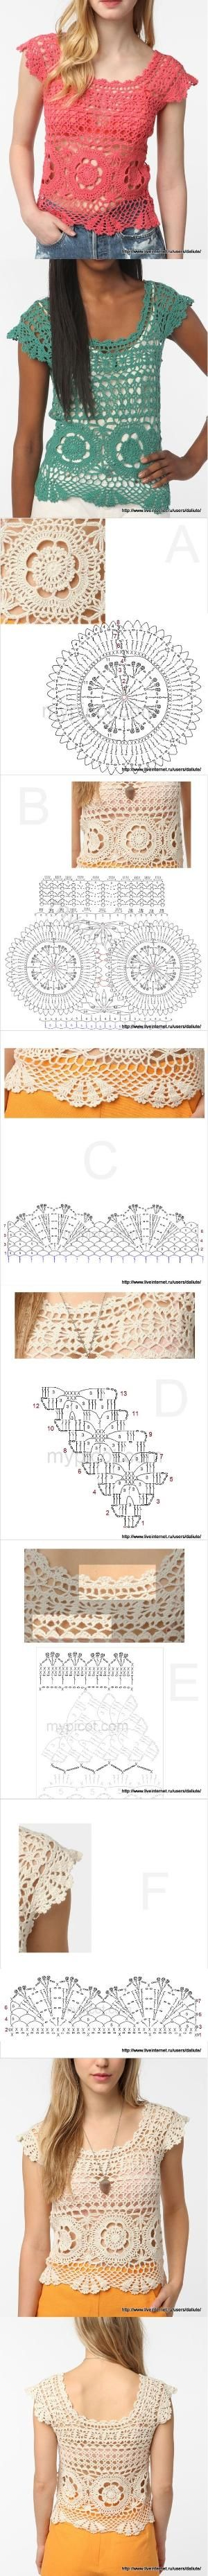 Nice crochet top with all the charts! by kayrou